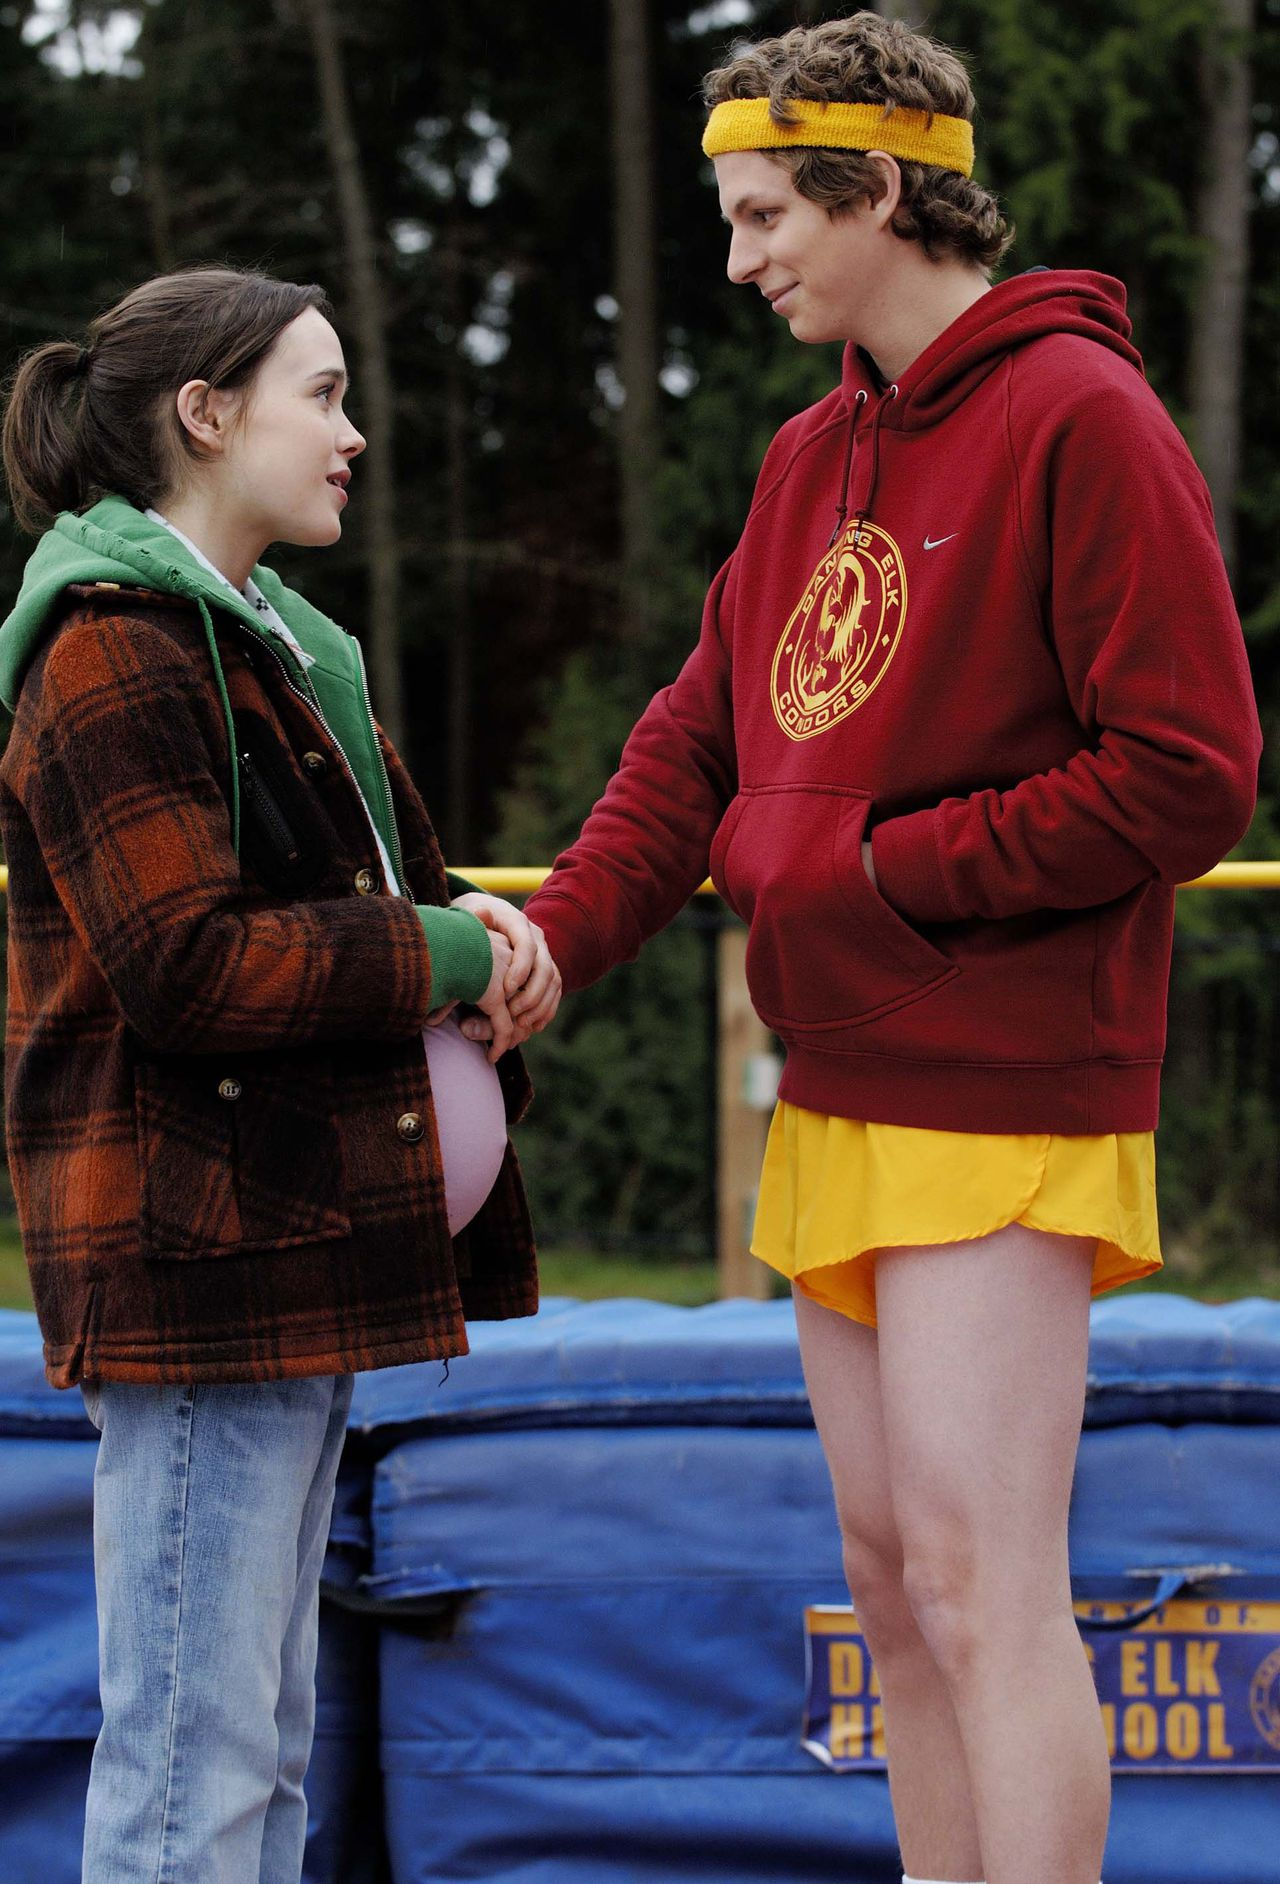 """Openingsfilm Juno Foto AP This image released by Fox Searchlight shows a scene from """"Juno"""" with Ellen Page, left, and Michael Cera. (AP Photo/Fox Searchlight, Doane Gregory)"""